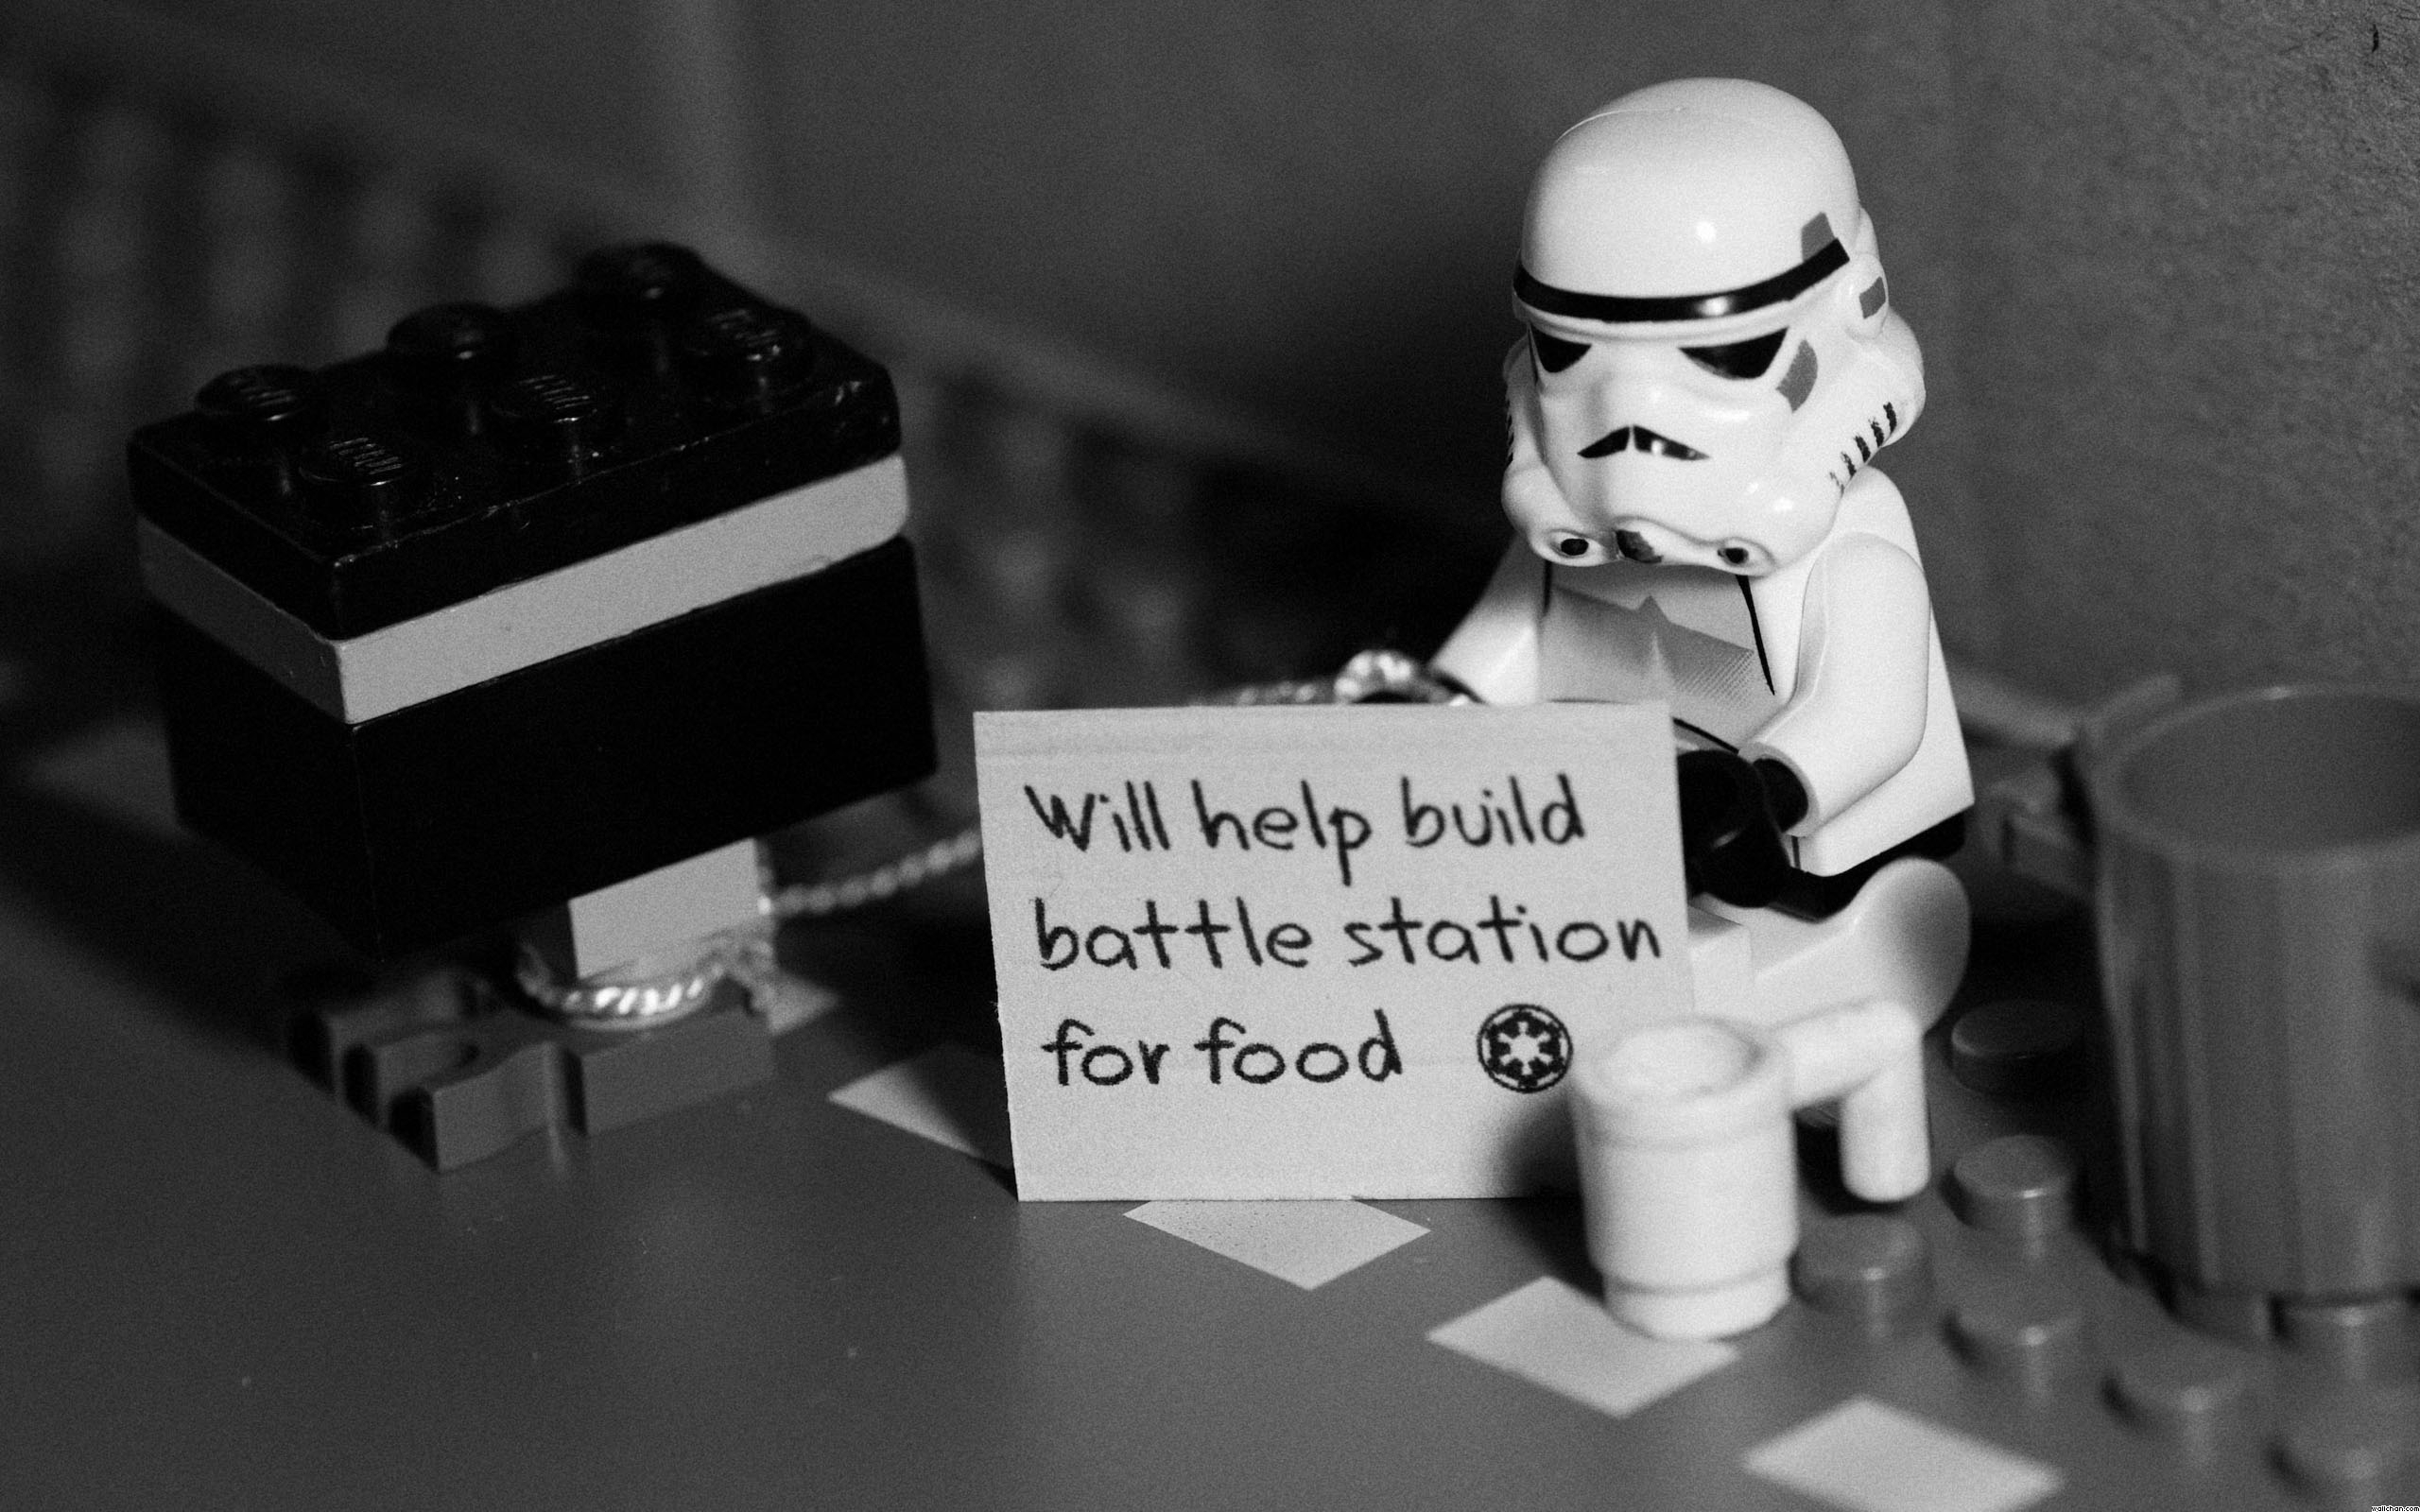 star wars images funny - photo #22